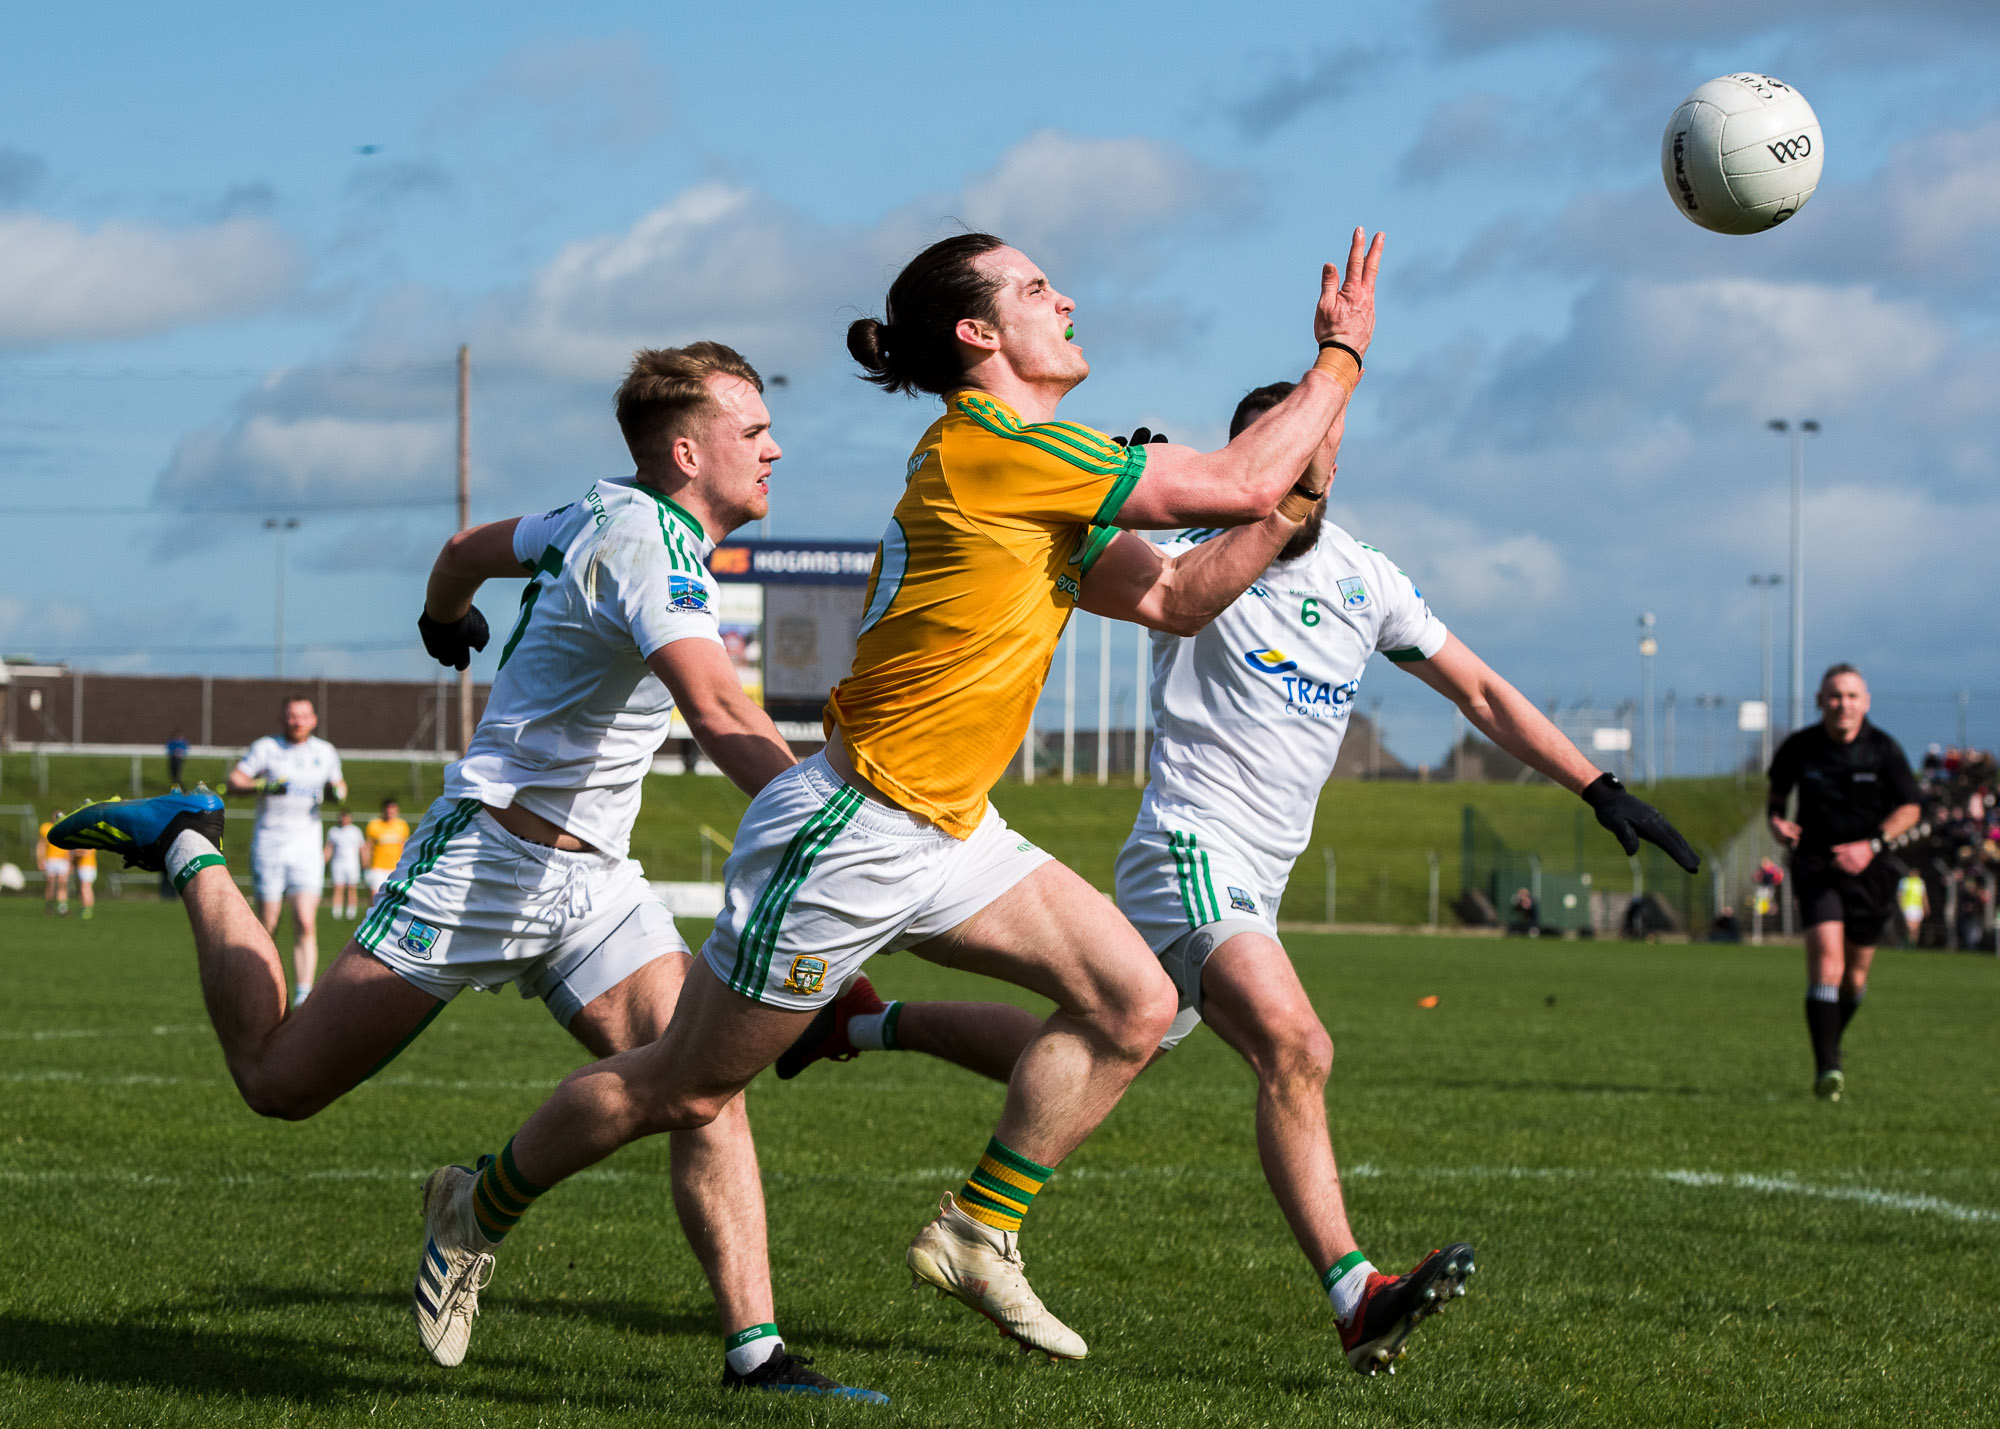 Meath Vs Fermanagh-3.JPG